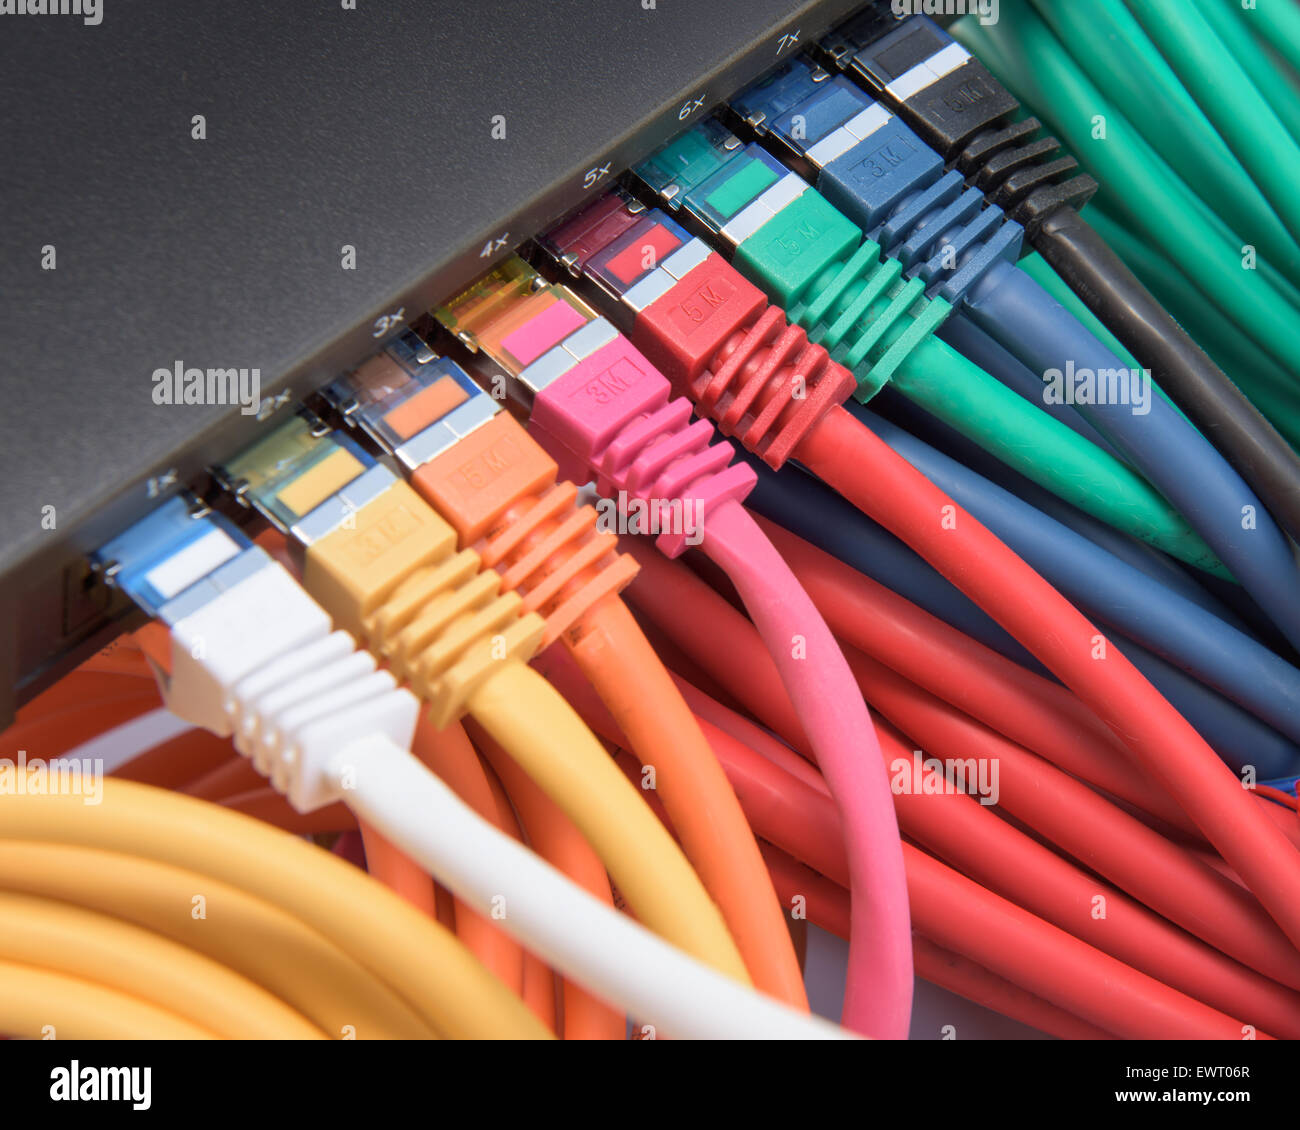 Colorful network cables connected to a switch - Stock Image